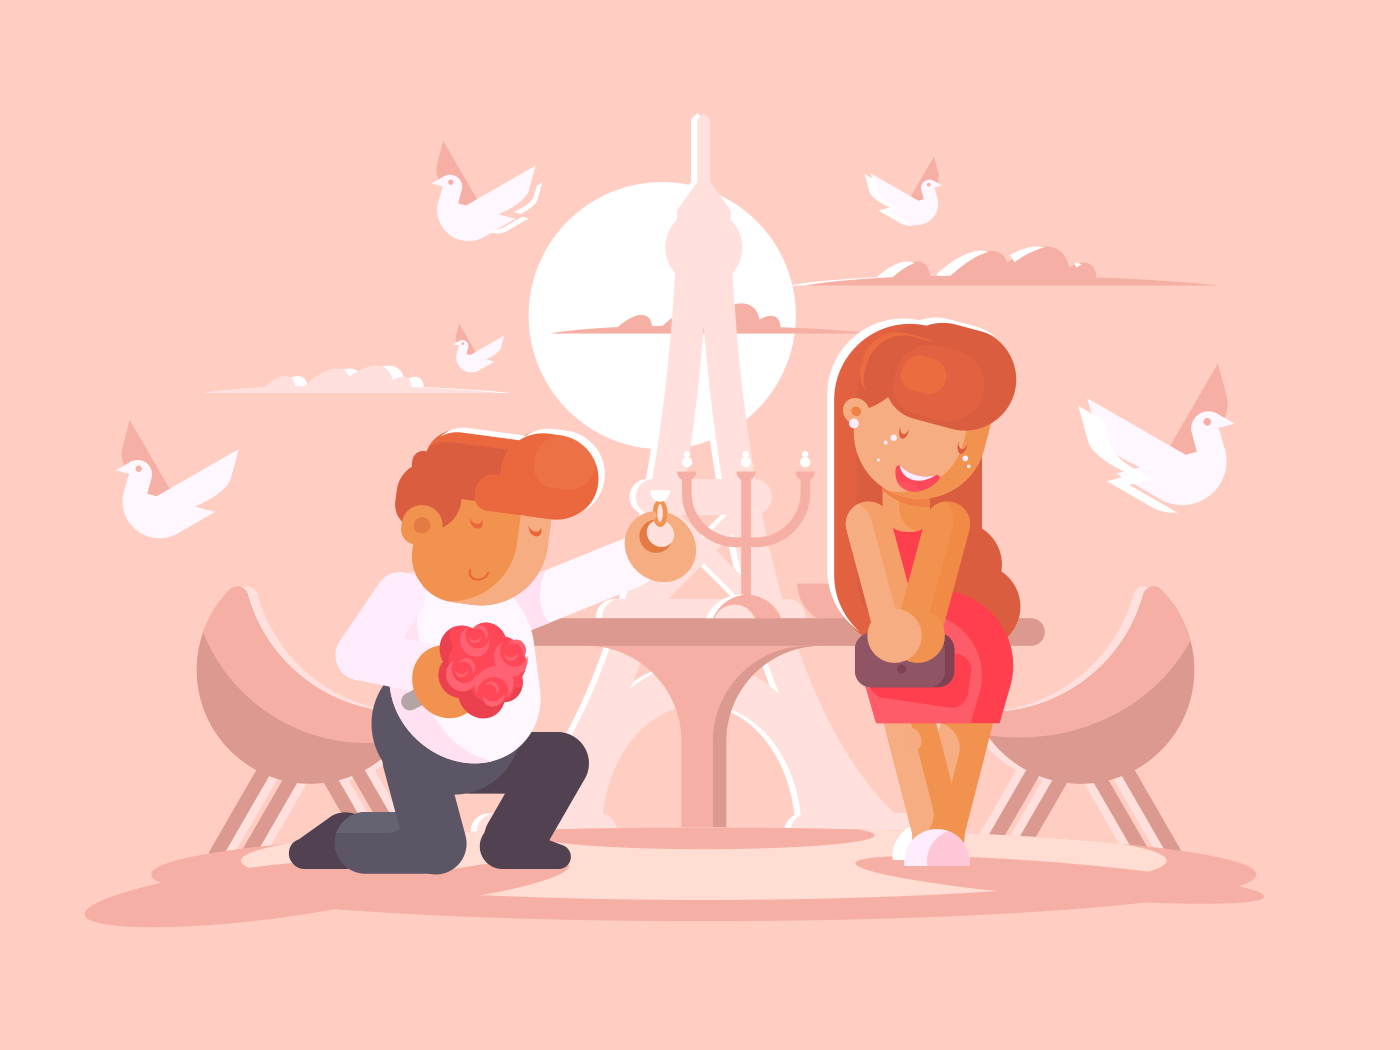 Young guy proposes to marry girlfriend illustration